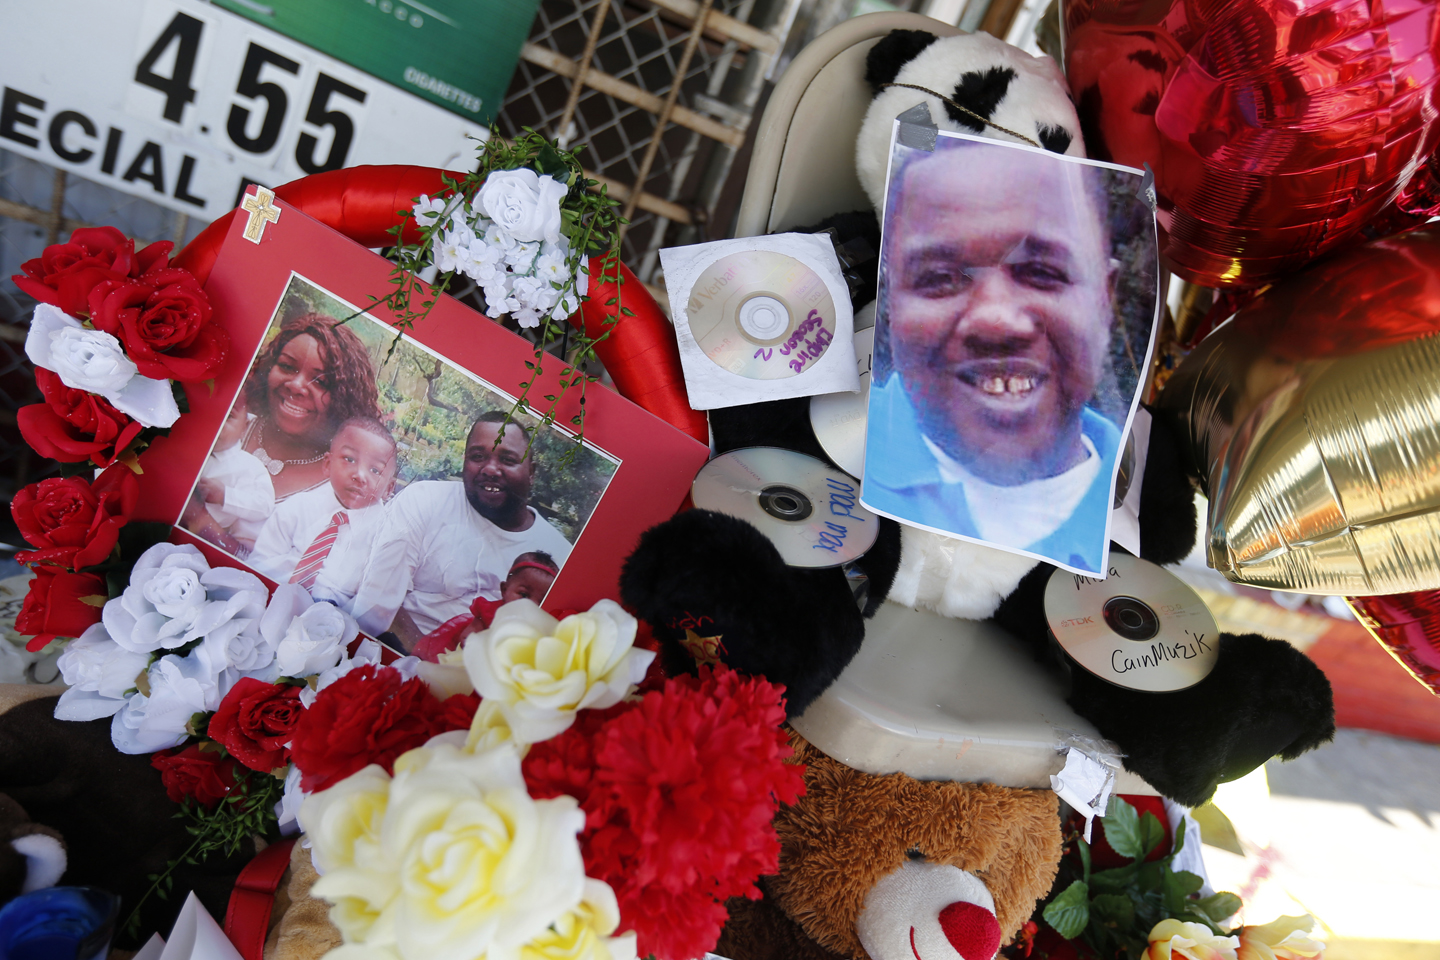 Photos of Alton Sterling are interspersed with flowers and mementos at a makeshift memorial in front of the Triple S Food Mart in Baton Rouge, La., Thursday, July 7, 2016. Sterling, 37, was shot and killed outside the convenience store by Baton Rouge police, where he was selling CDs.